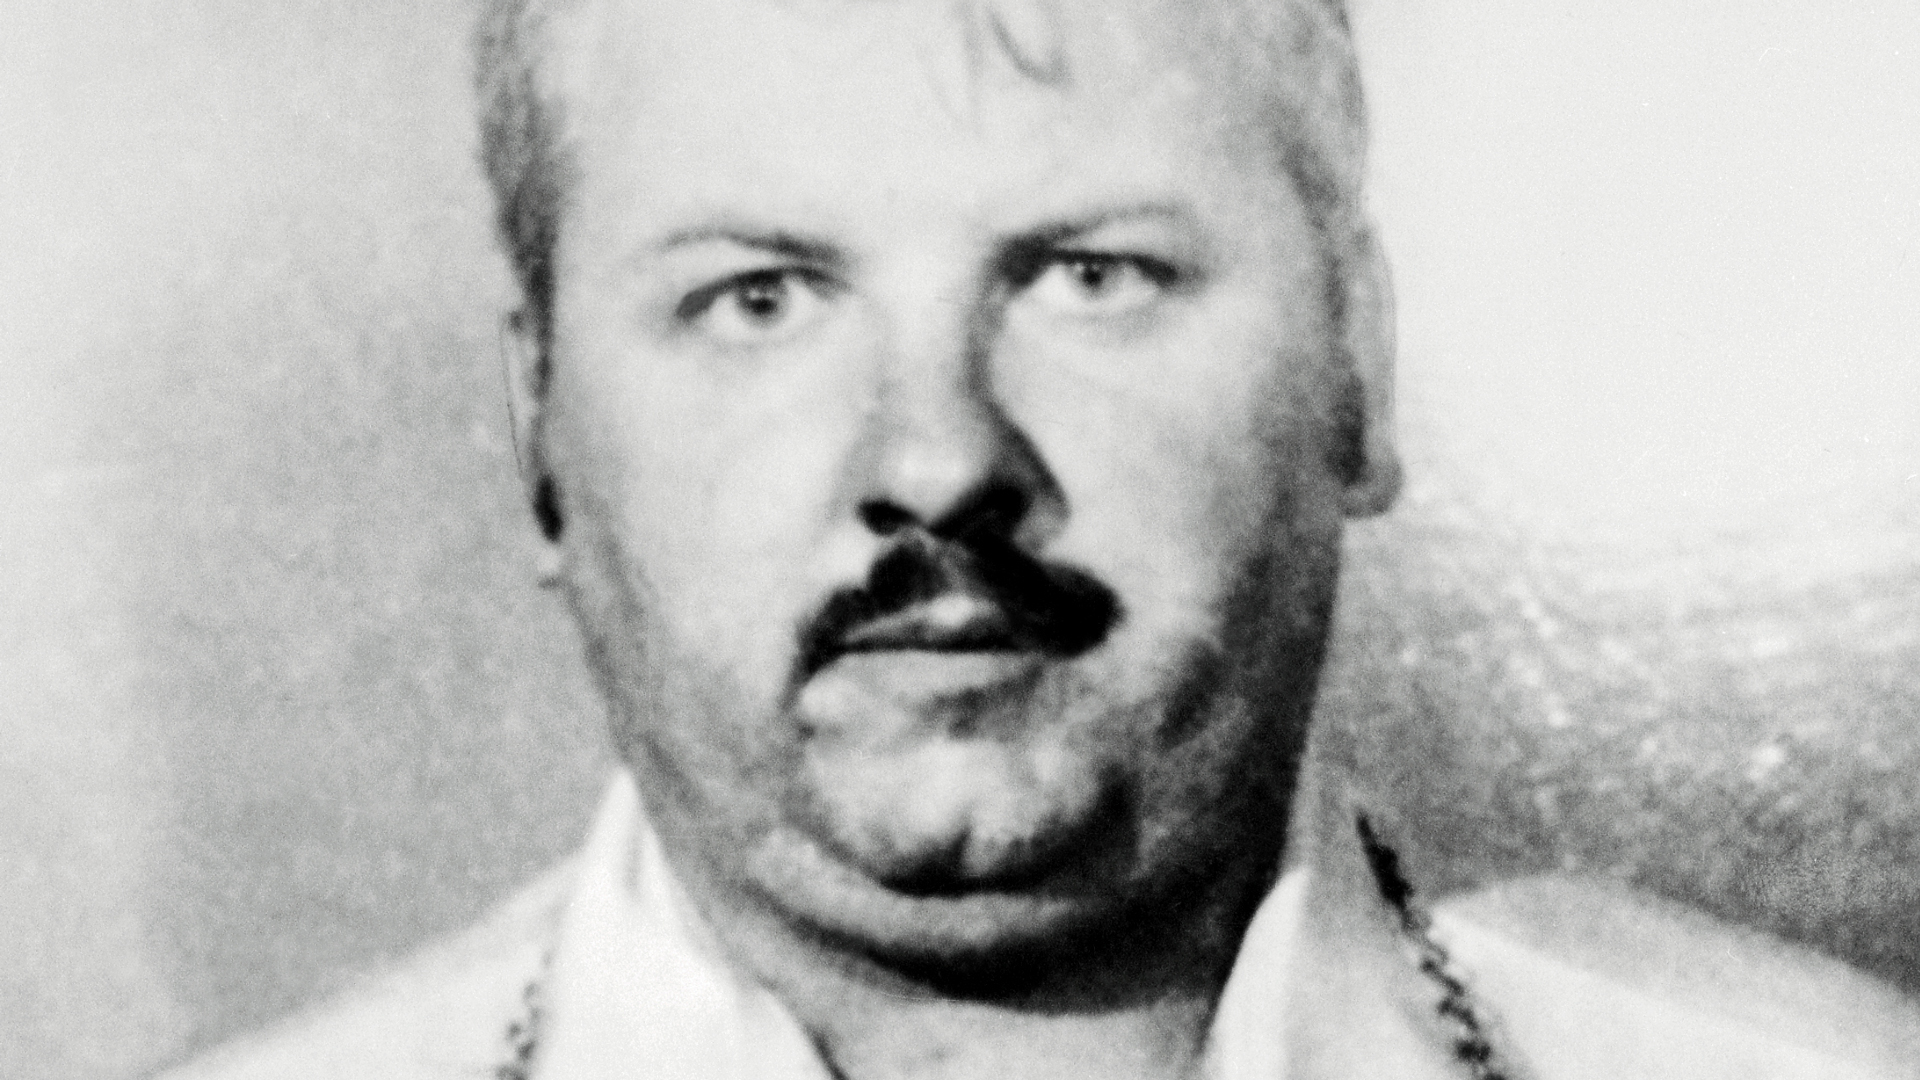 John Wayne Gacy's Childhood: 'Killer Clown' Serial Killer Was Victim of Abuse